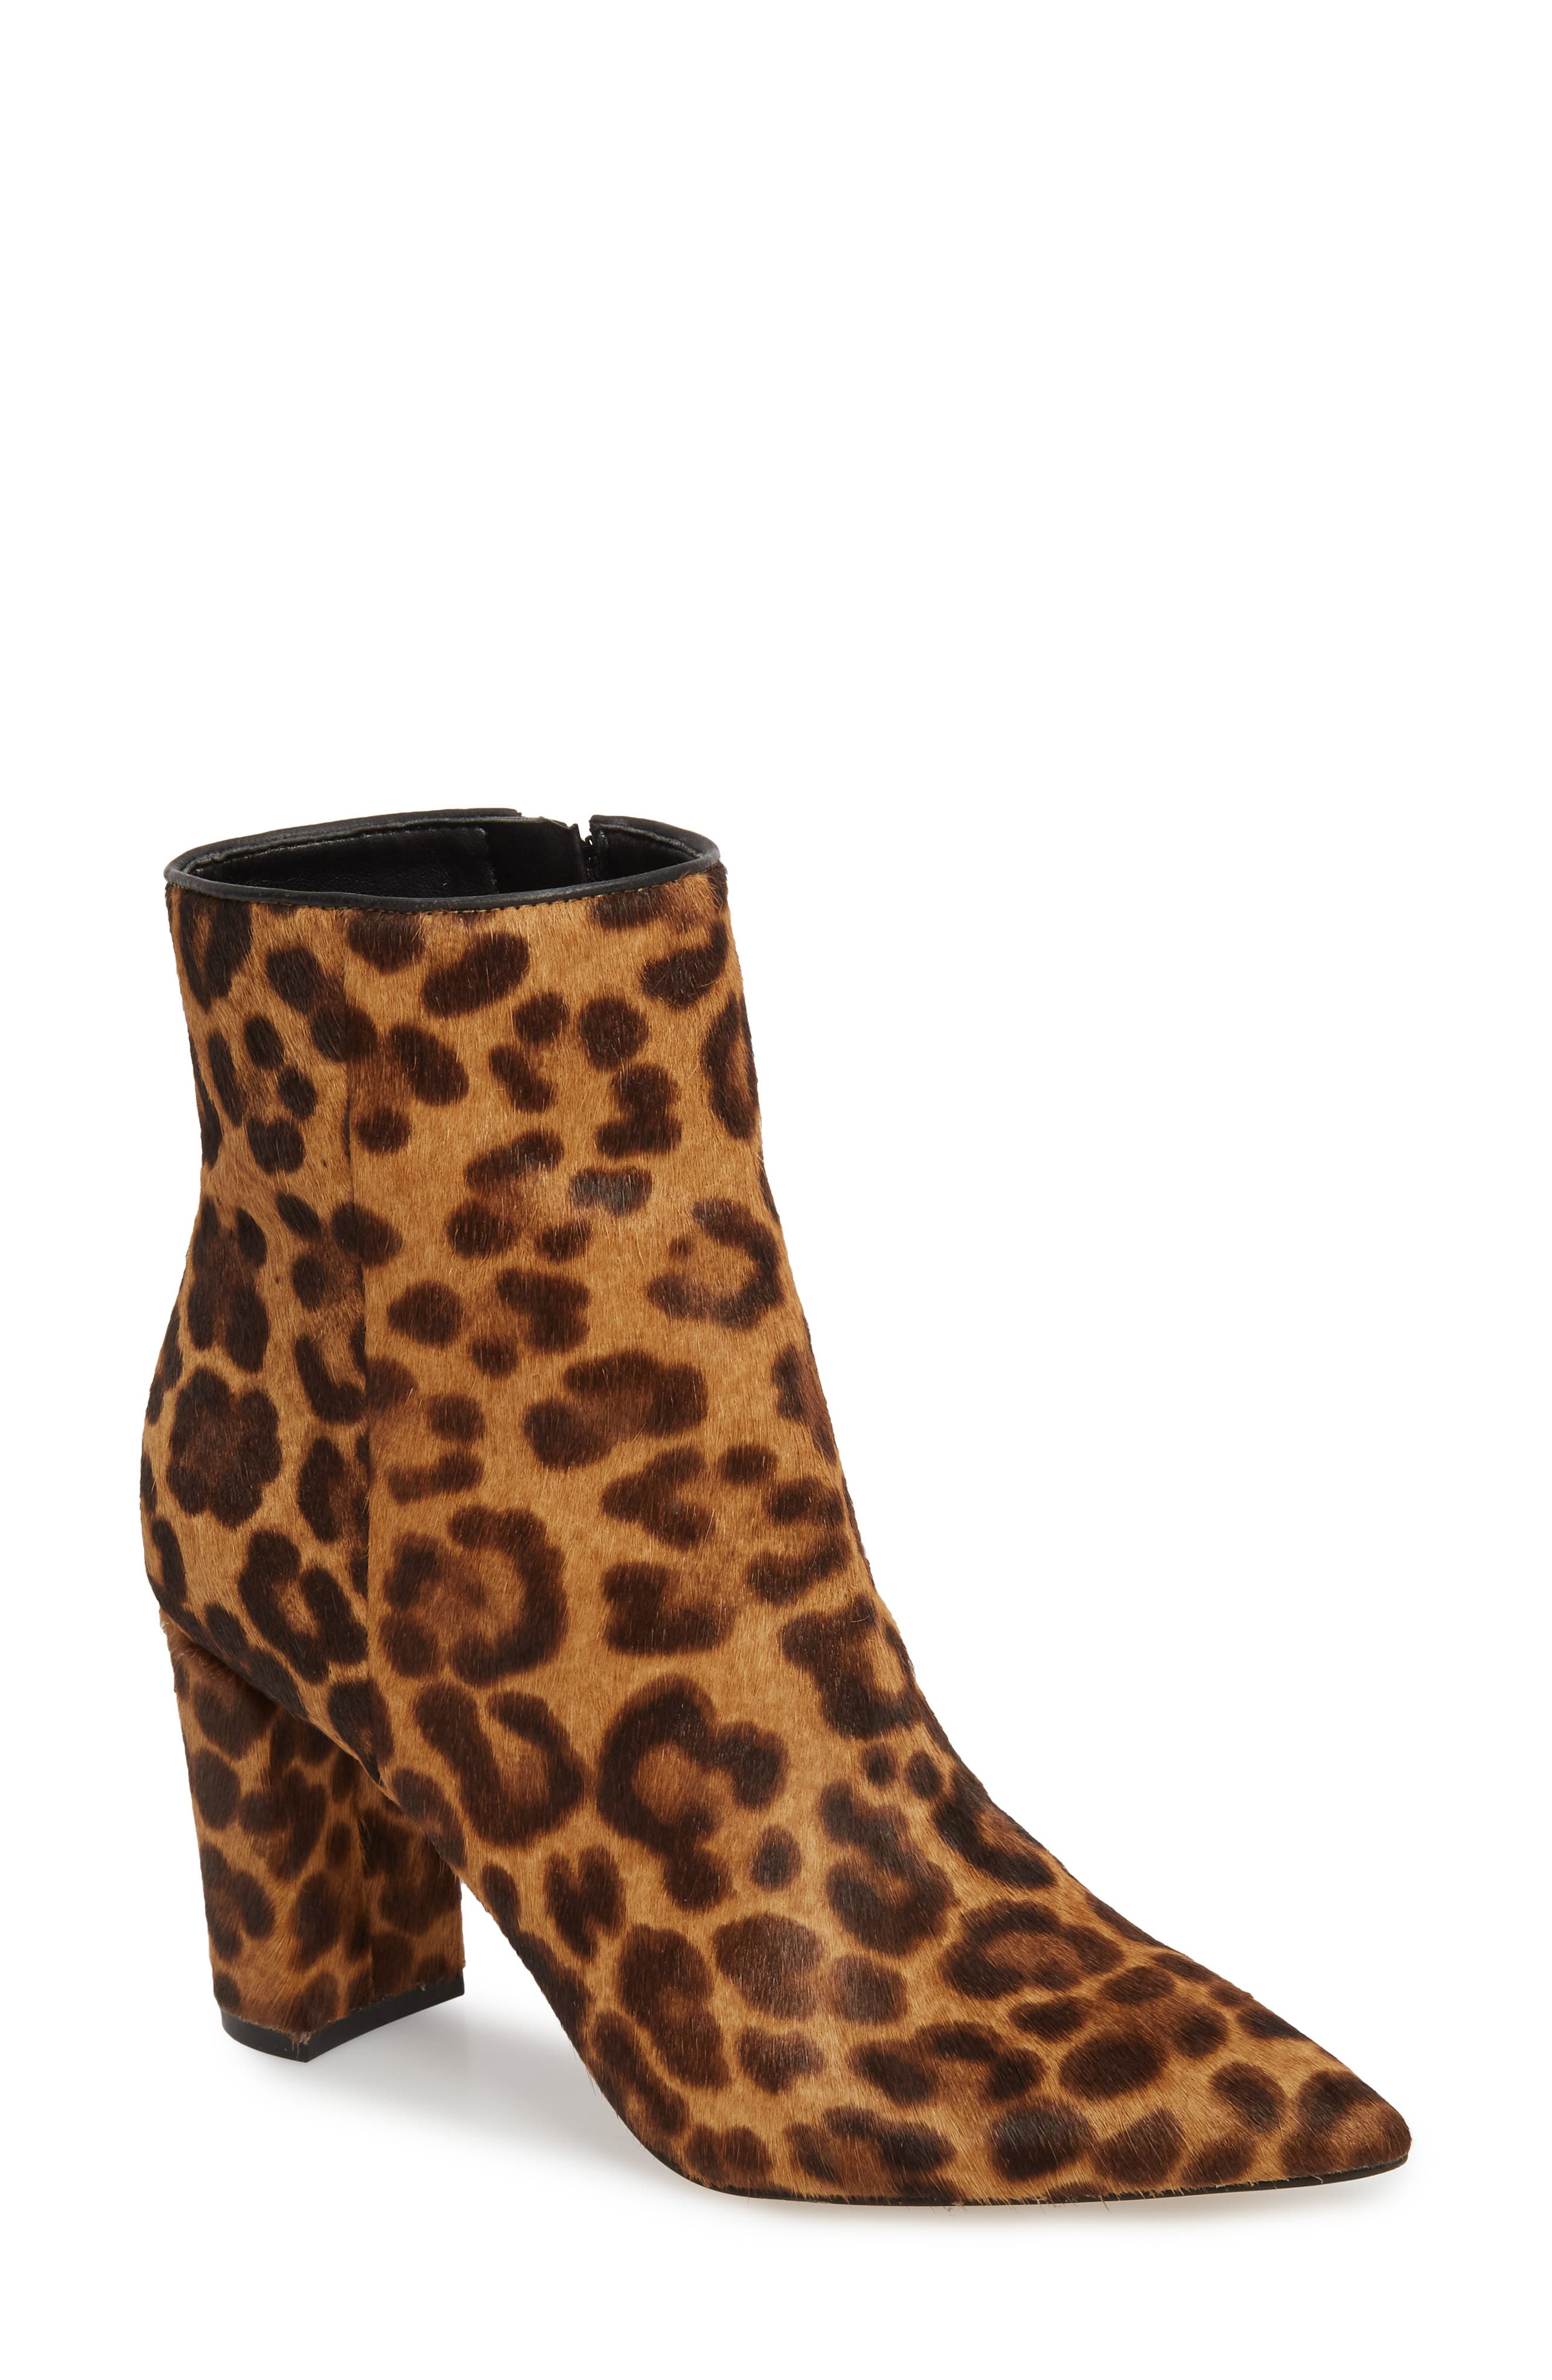 Ulanily Pointy Toe Bootie,                         Main,                         color, LEOPARD CALF HAIR